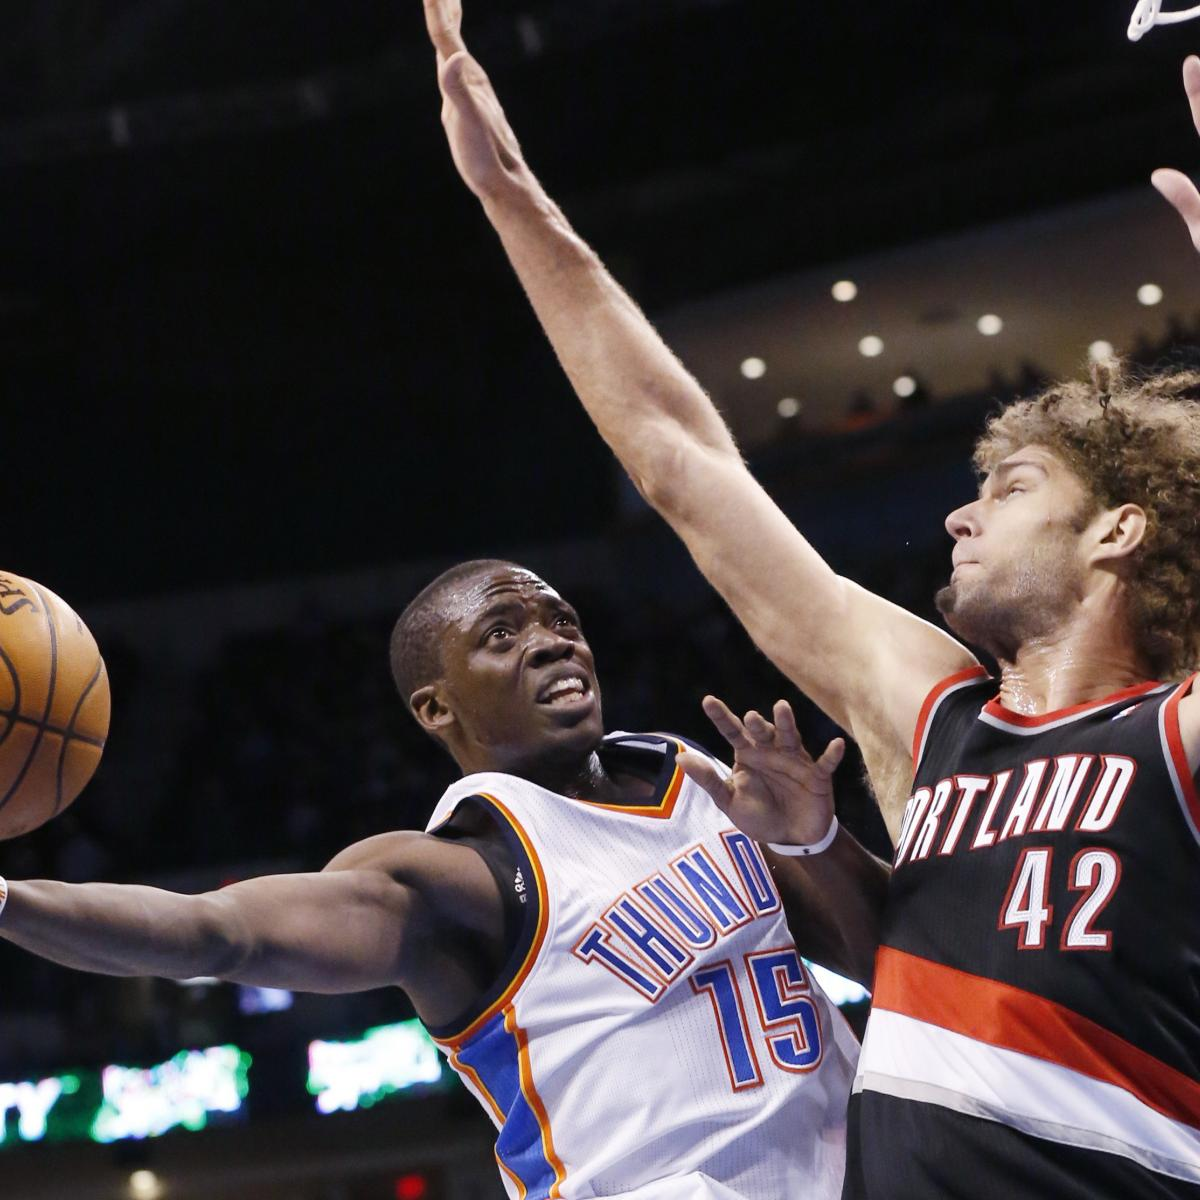 Oklahoma City Thunder Vs. Portland Trail Blazers Odds